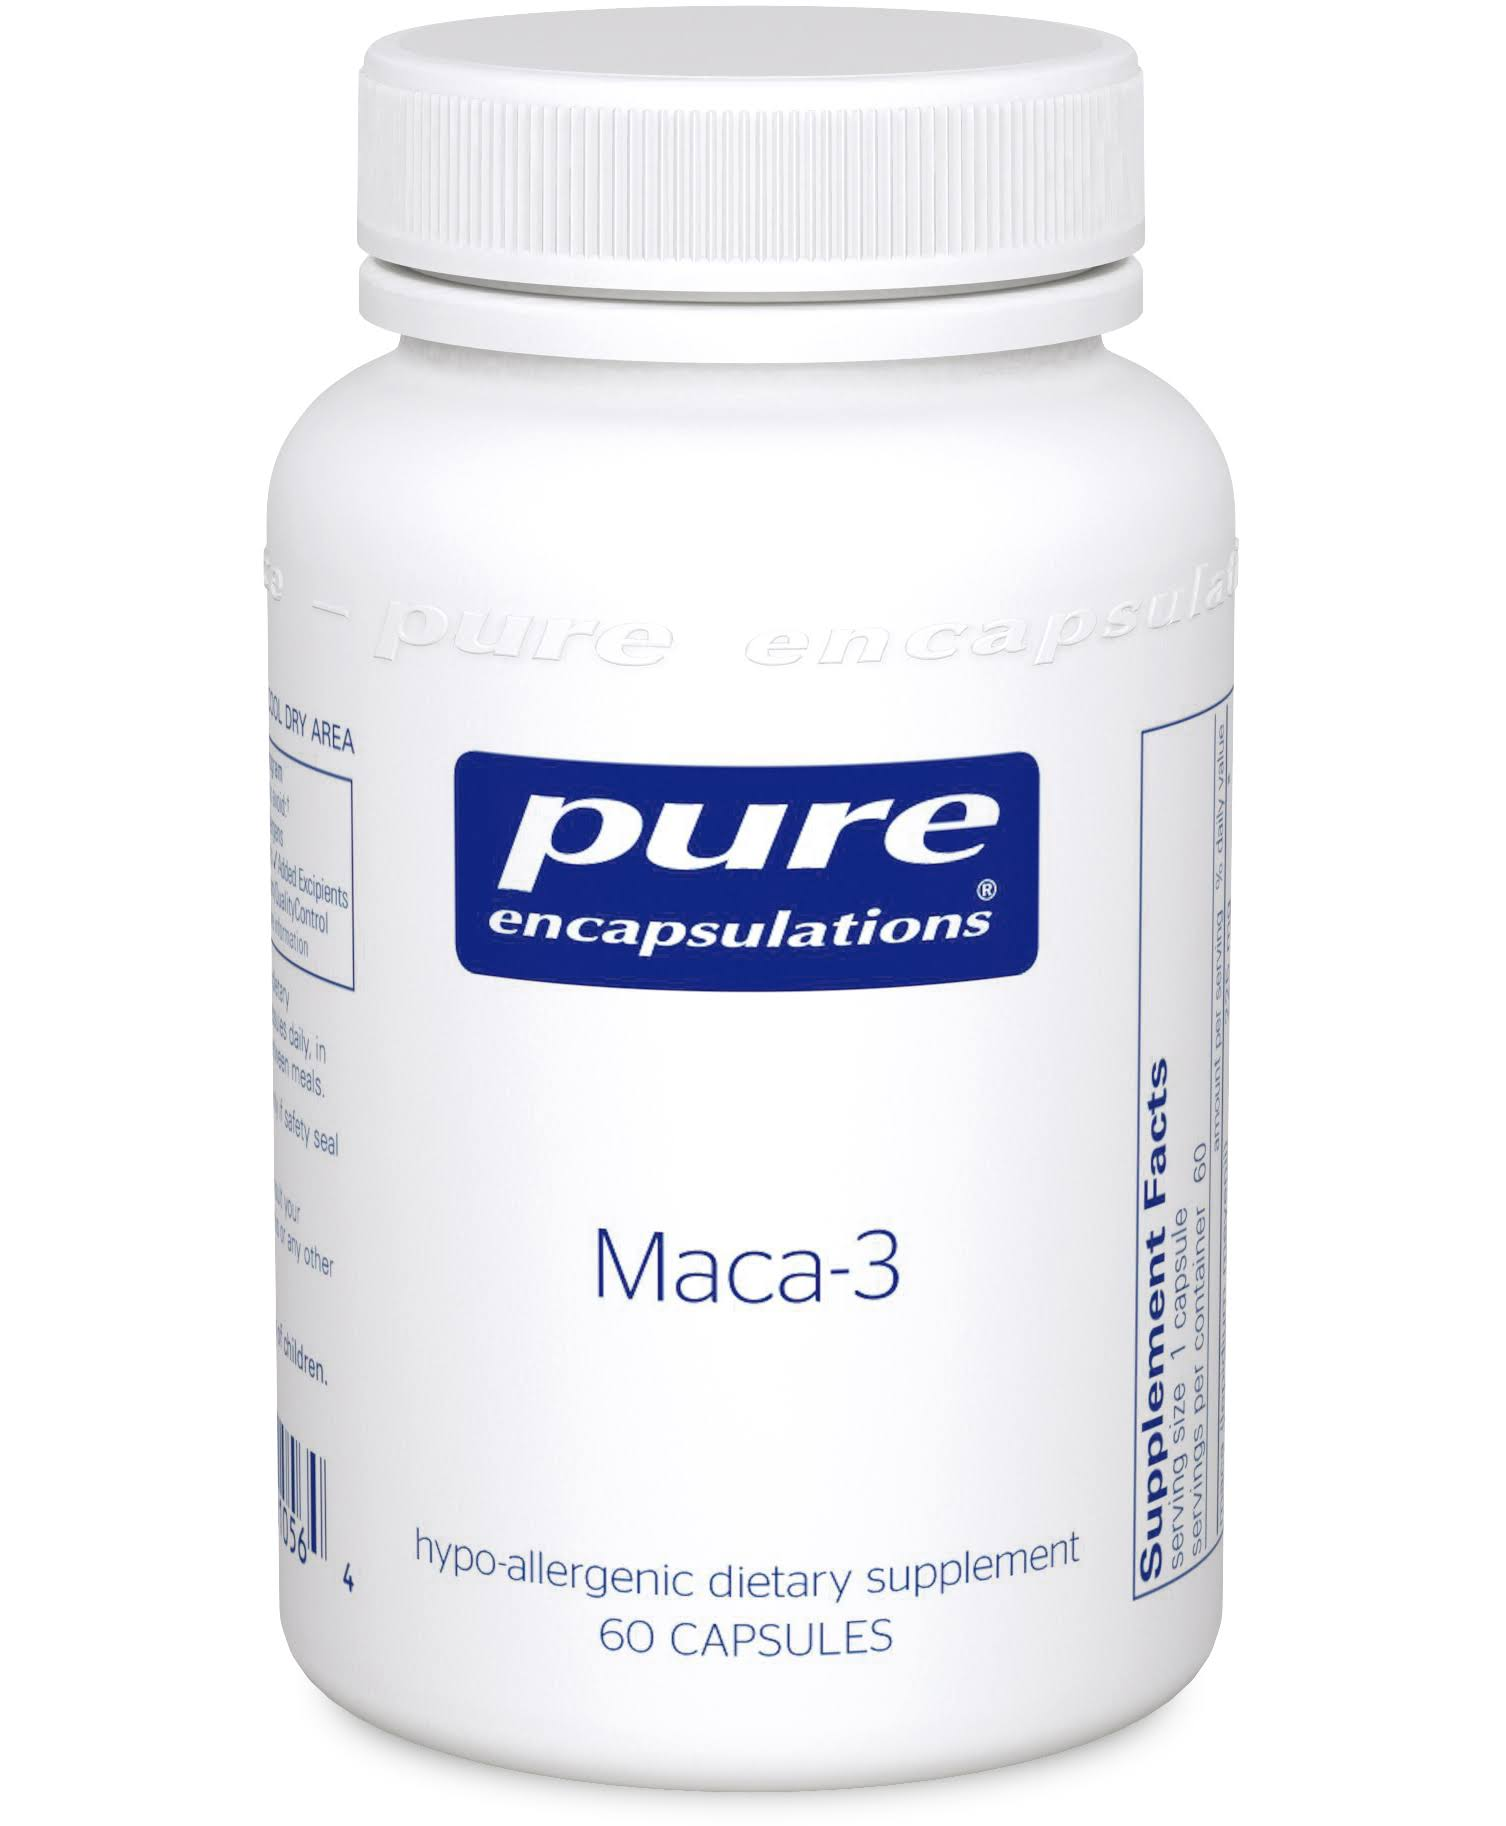 Pure Encapsulations Maca-3 Dietary Supplement - 60 Capsules